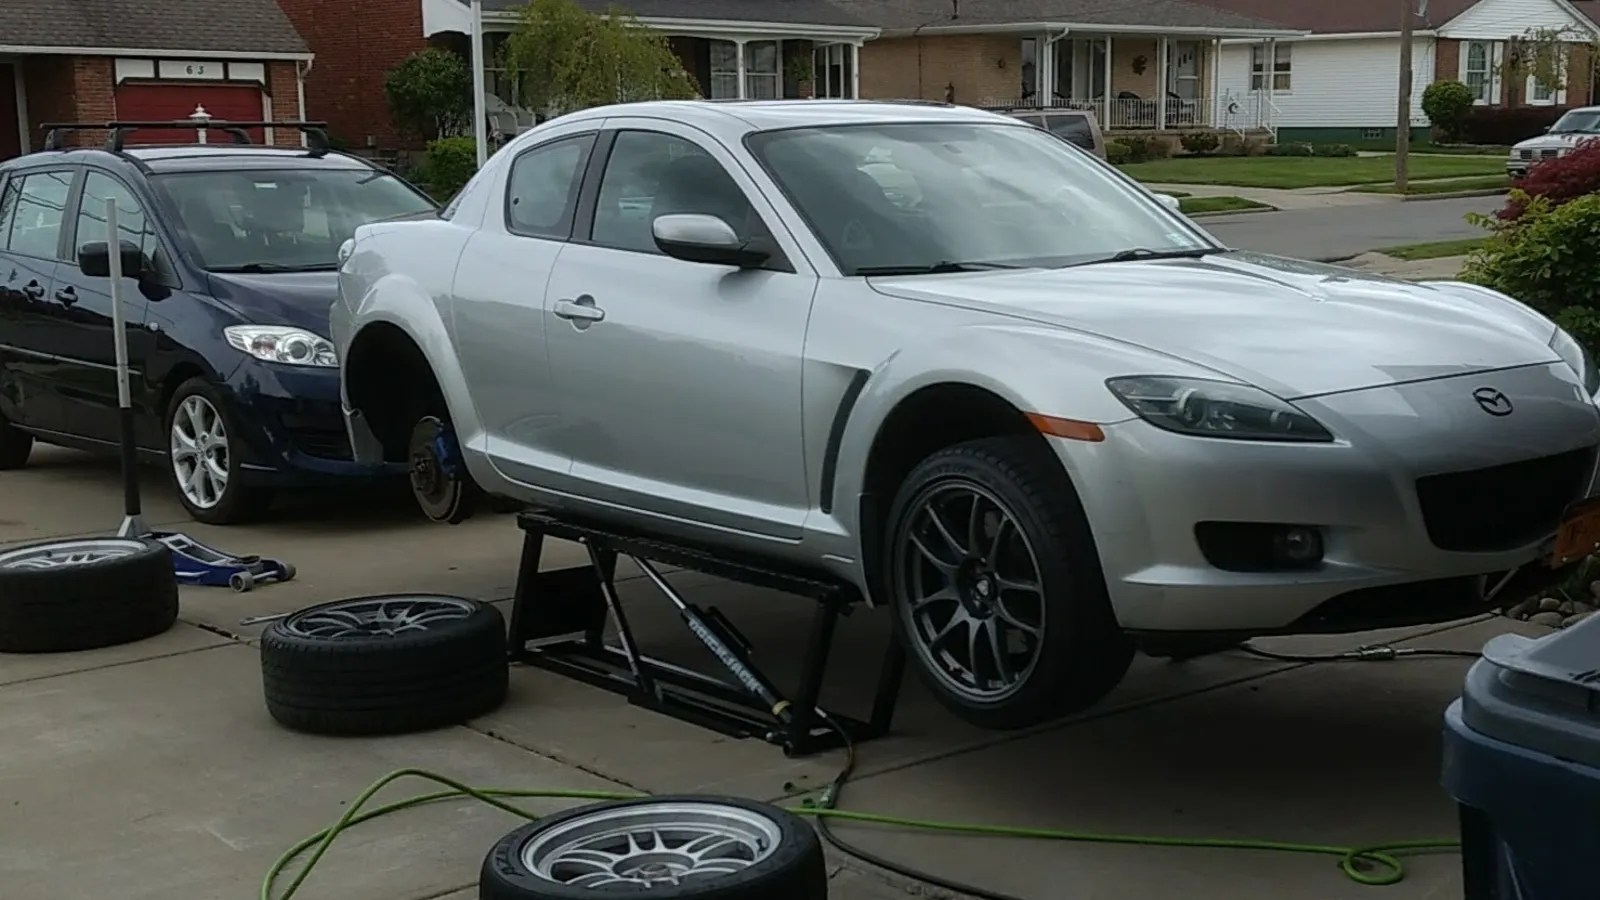 In Ground Garage Car Lift Tool Review The Quickjack Is It As Good As A Real Lift Or Is It